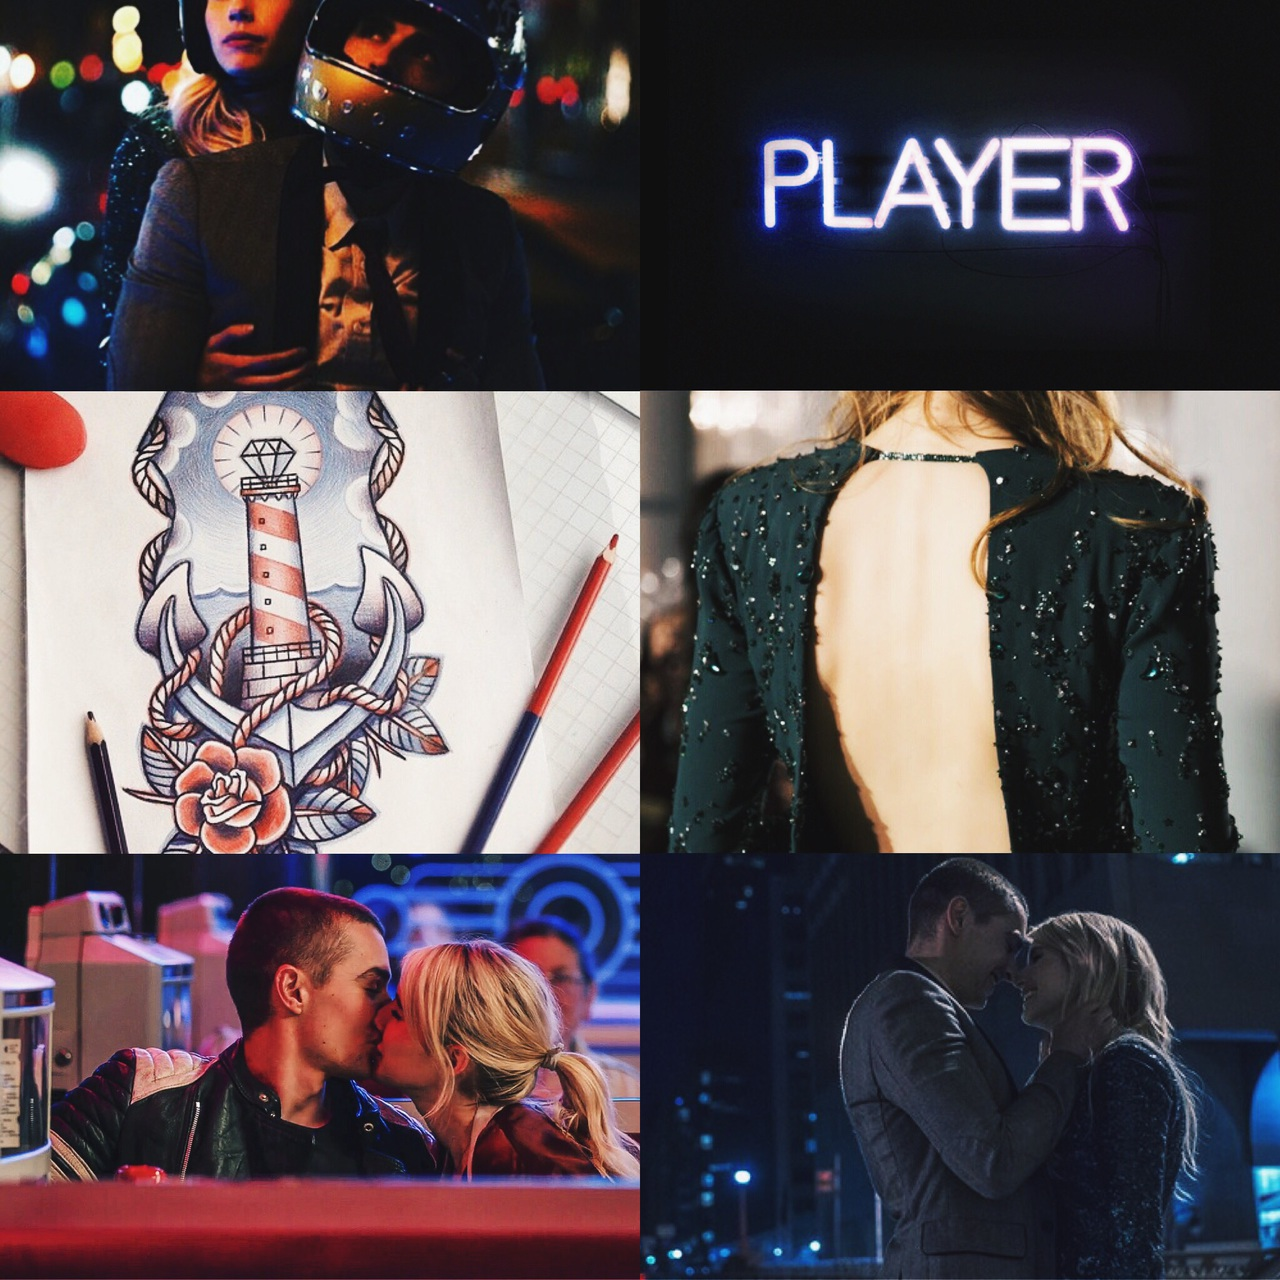 aesthetic, collage, couples, david franco, emma roberts